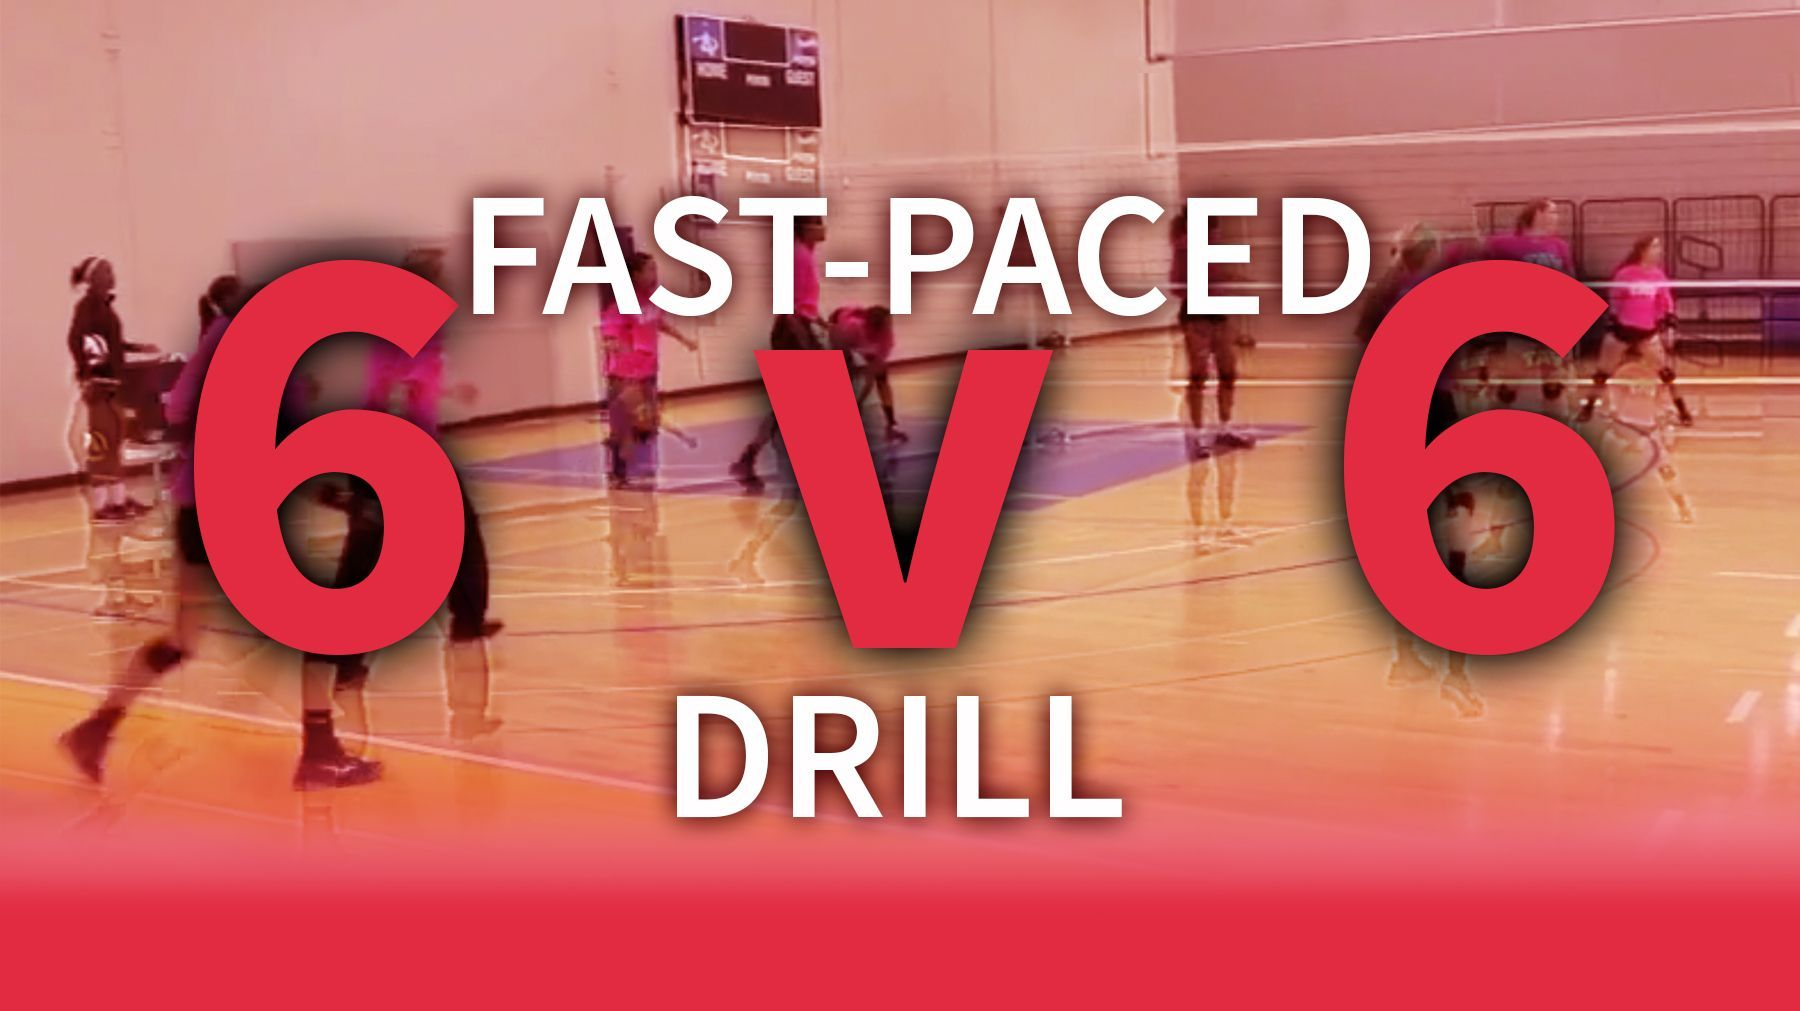 Fast Paced 6 V 6 Volleyball Drill From Tav In Dallas The Art Of Coaching Volleyball Volleyball Drills Volleyball Practice Volleyball Skills